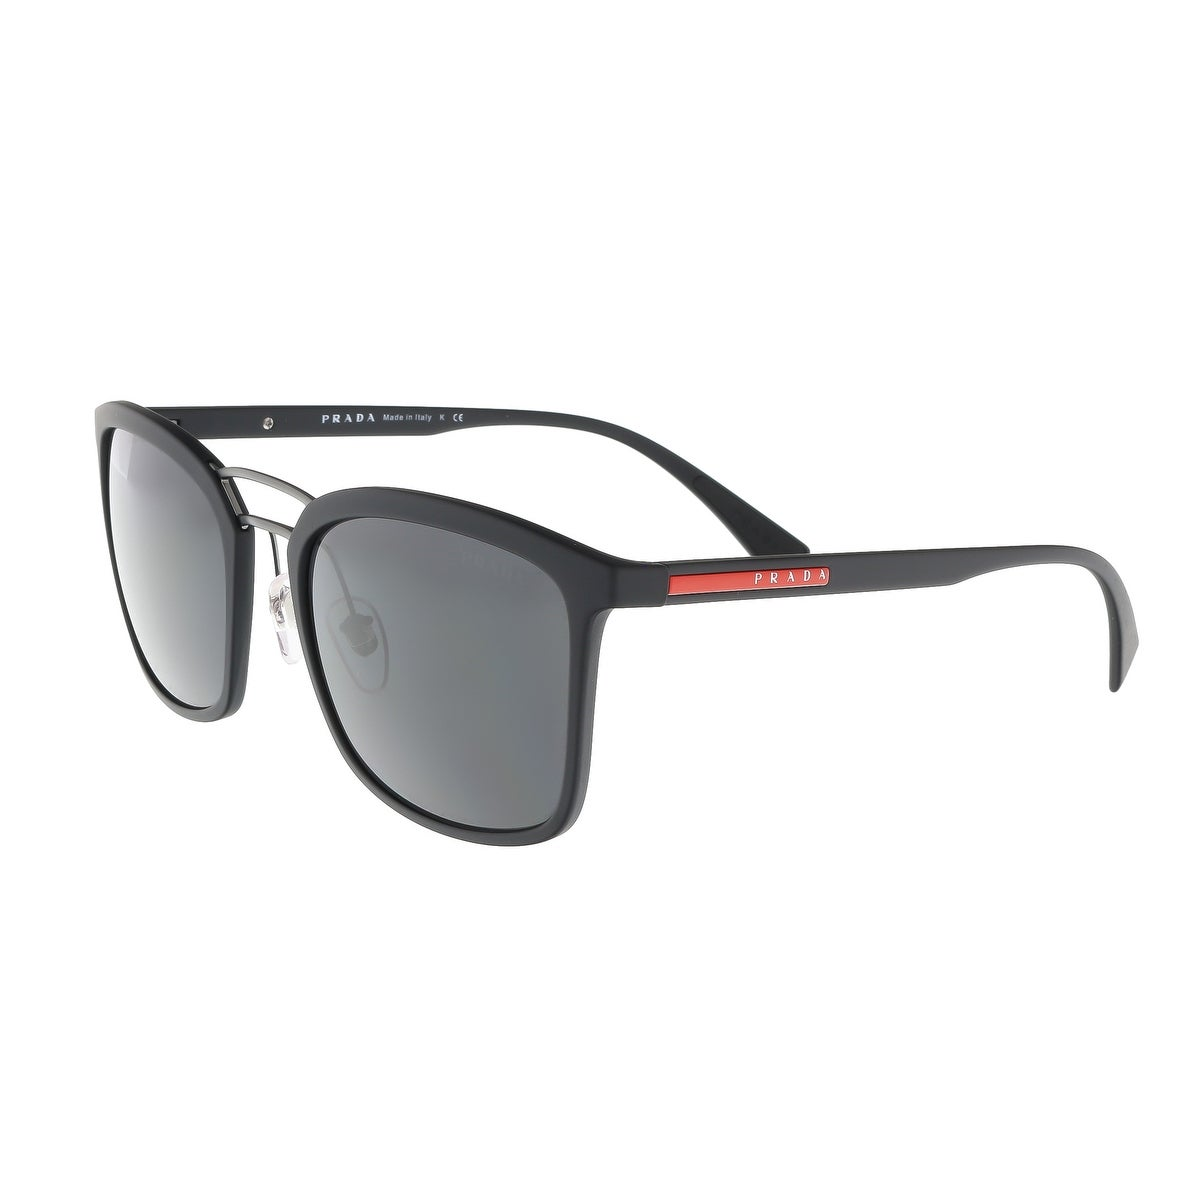 87c2512434cd Shop Prada PS 03SS DG05S0 Black Rubber Square Sunglasses - 56-21-140 - Free  Shipping Today - Overstock - 17646155